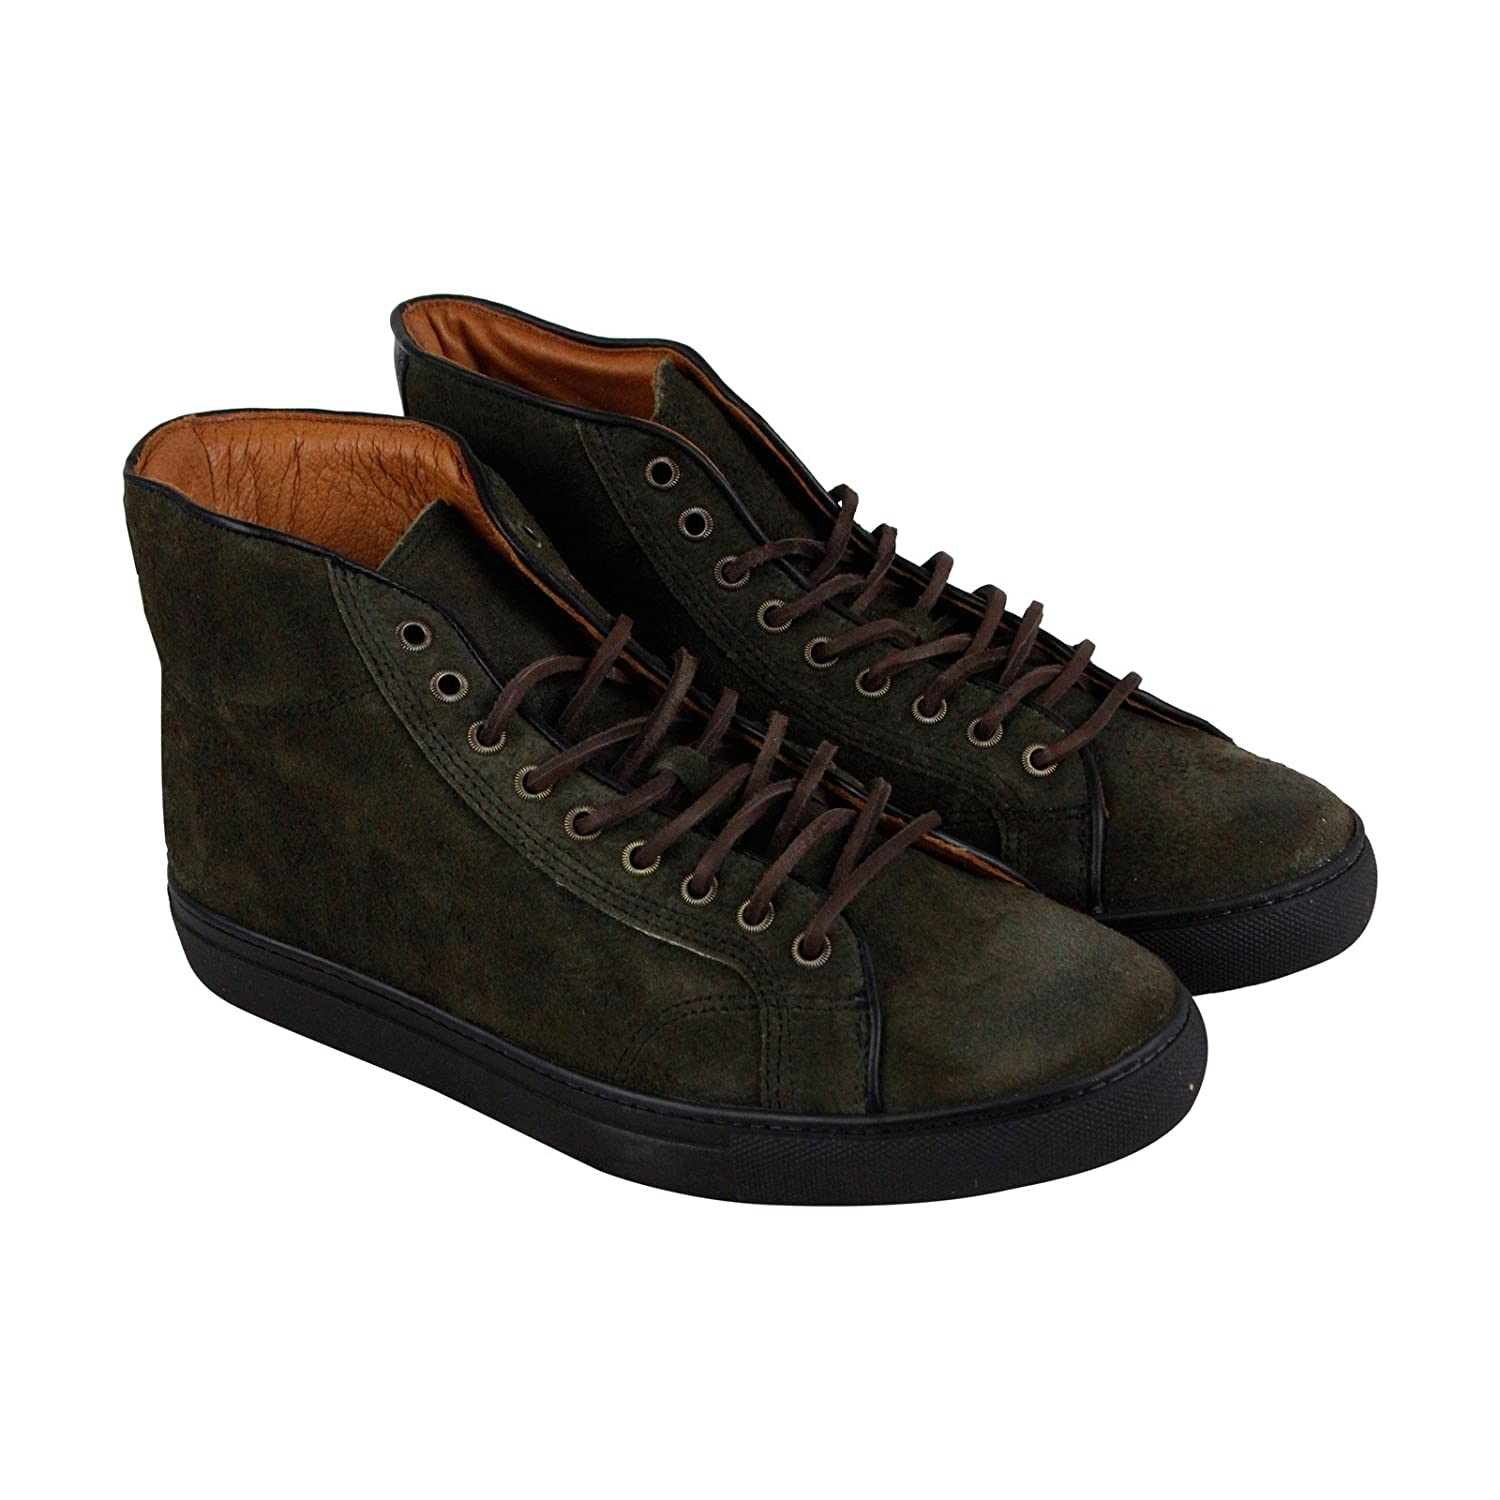 FRYE Men's Walker Midlace Tennis Shoe B01MYZ4J3C 12 D(M) US|Fatique Waxed Suede